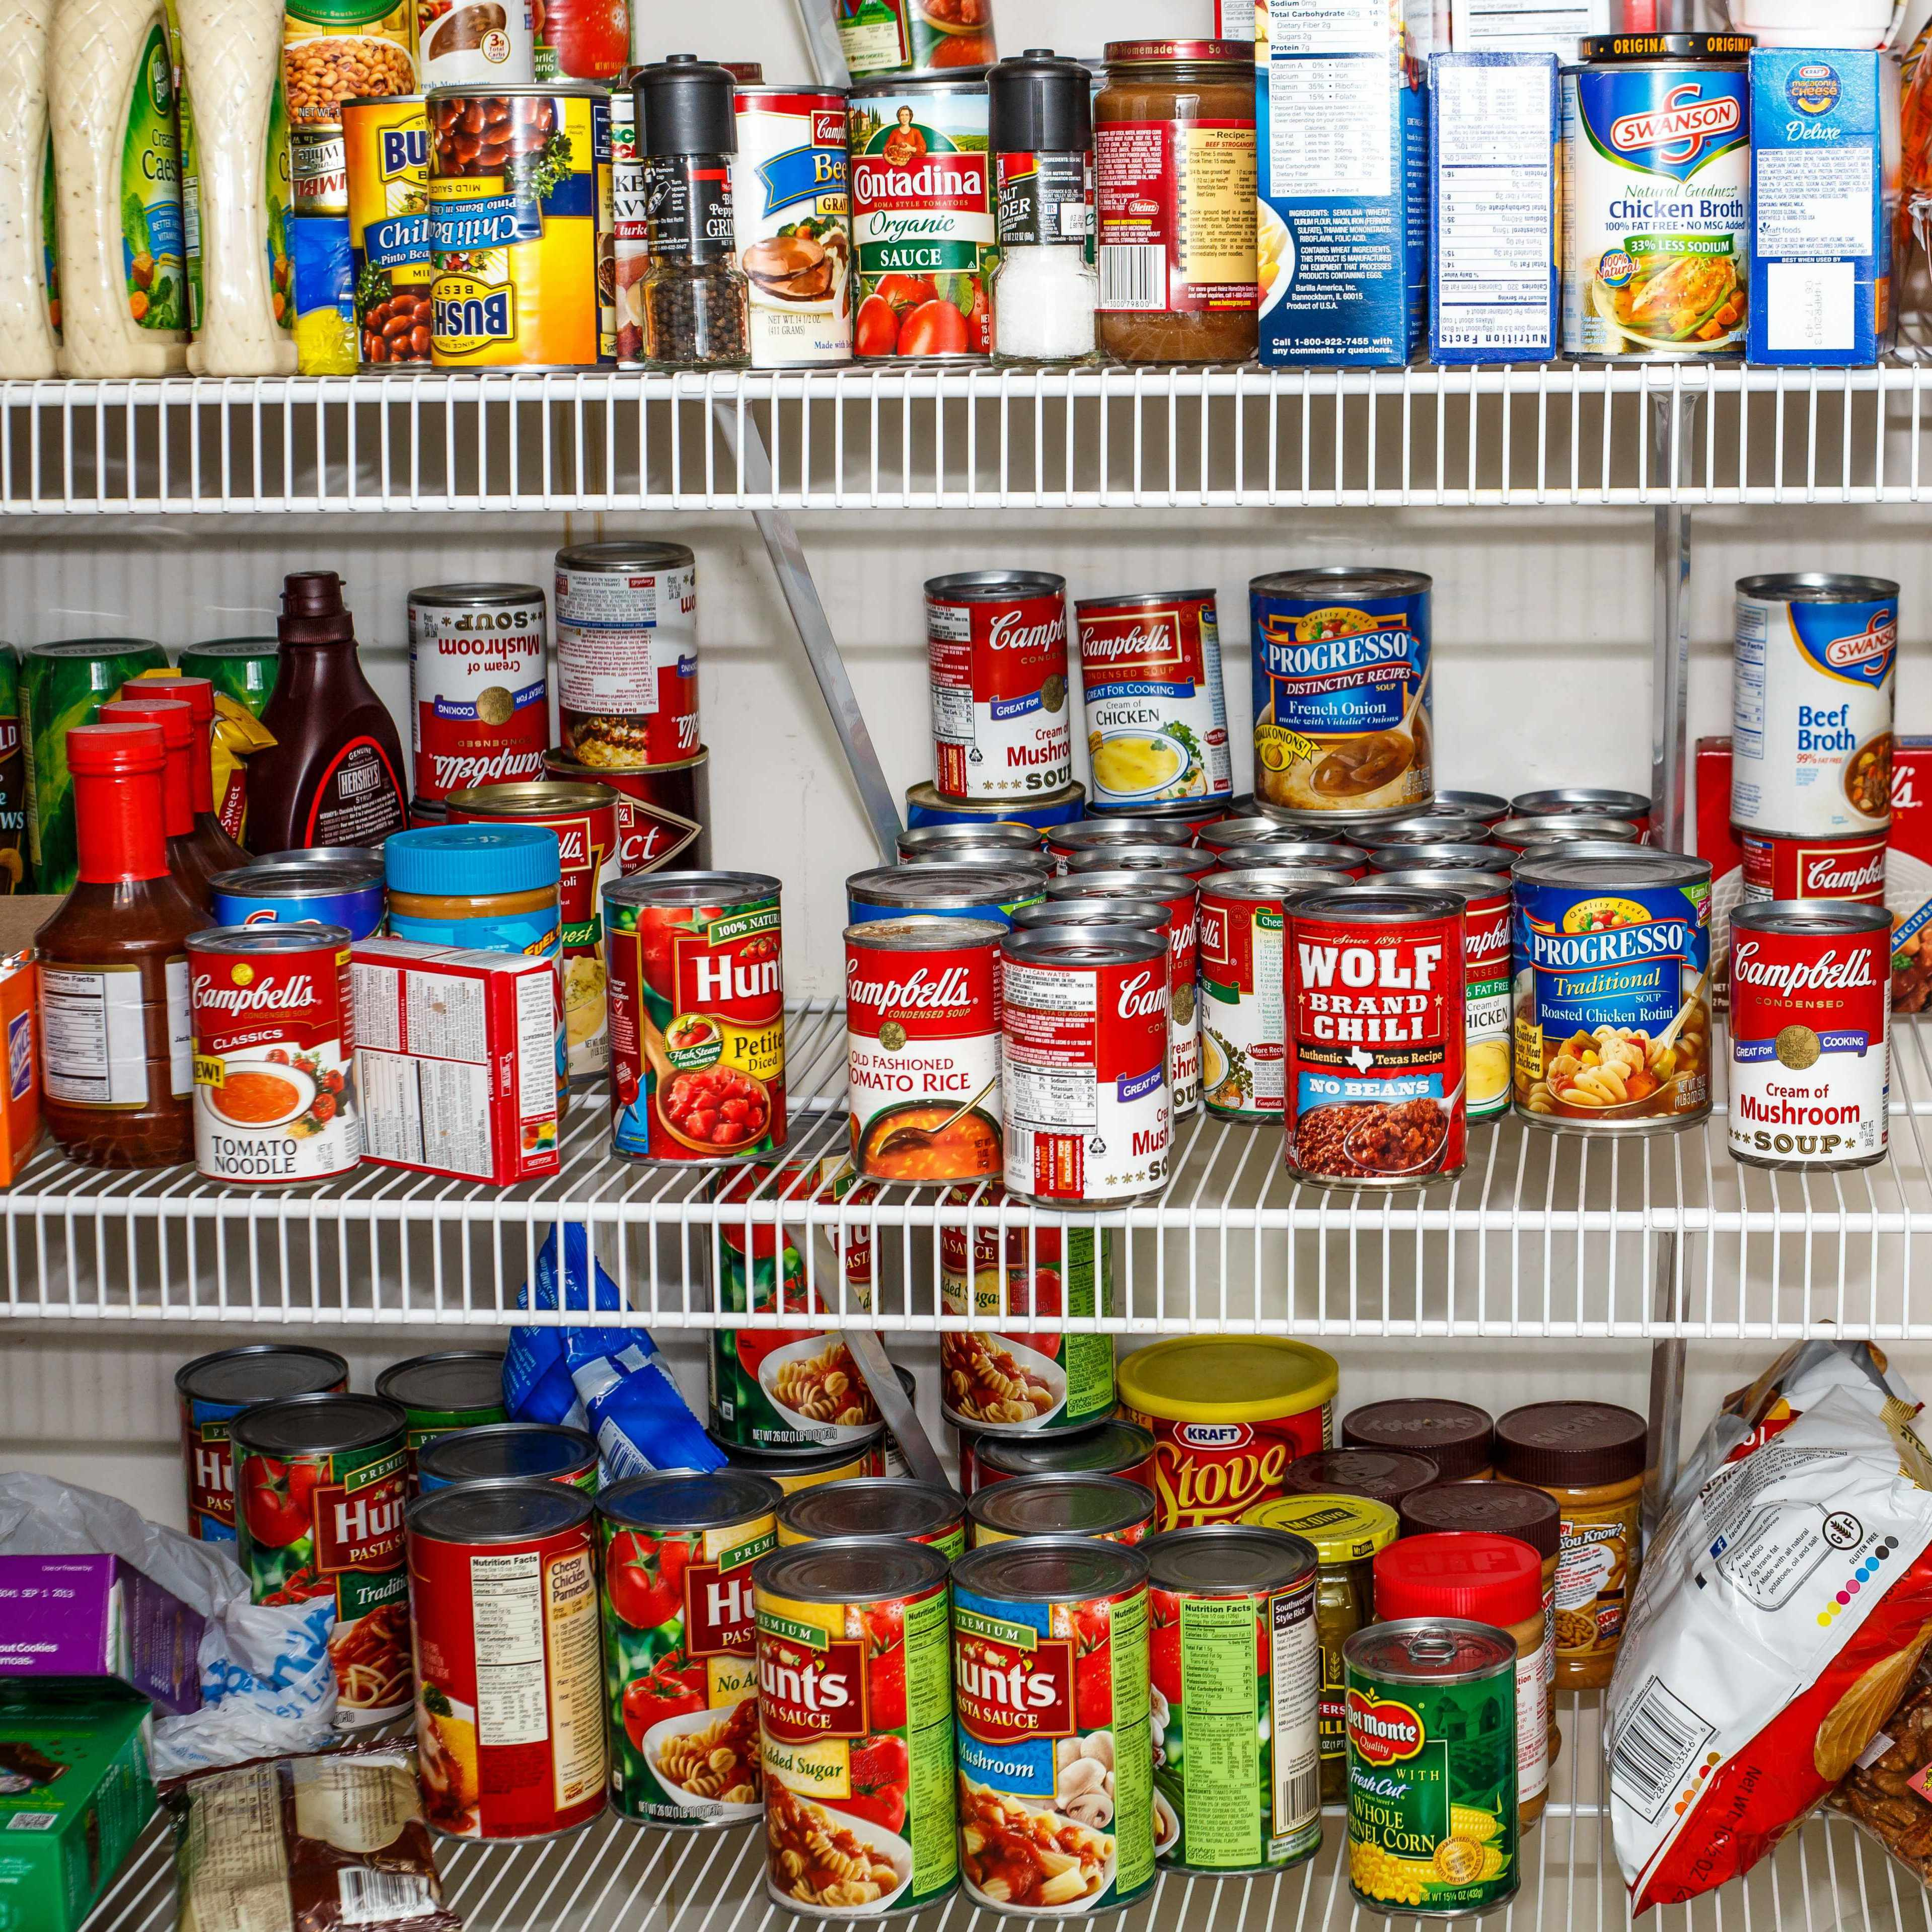 kitchen pantry shelf filled with canned foods and packaged items